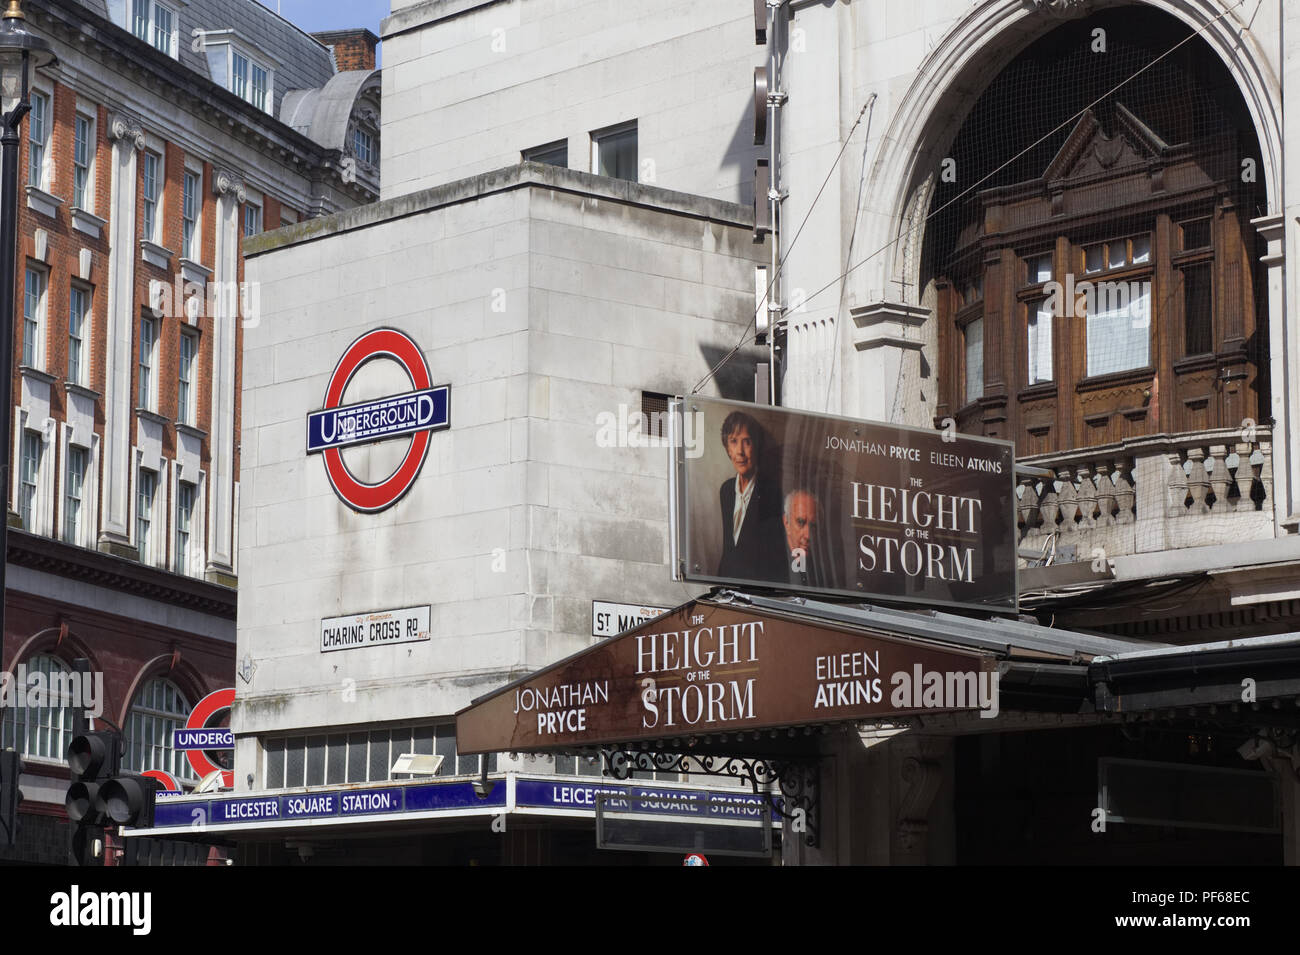 Leicester square underground and the advertising of The Height of the storm, London - Stock Image